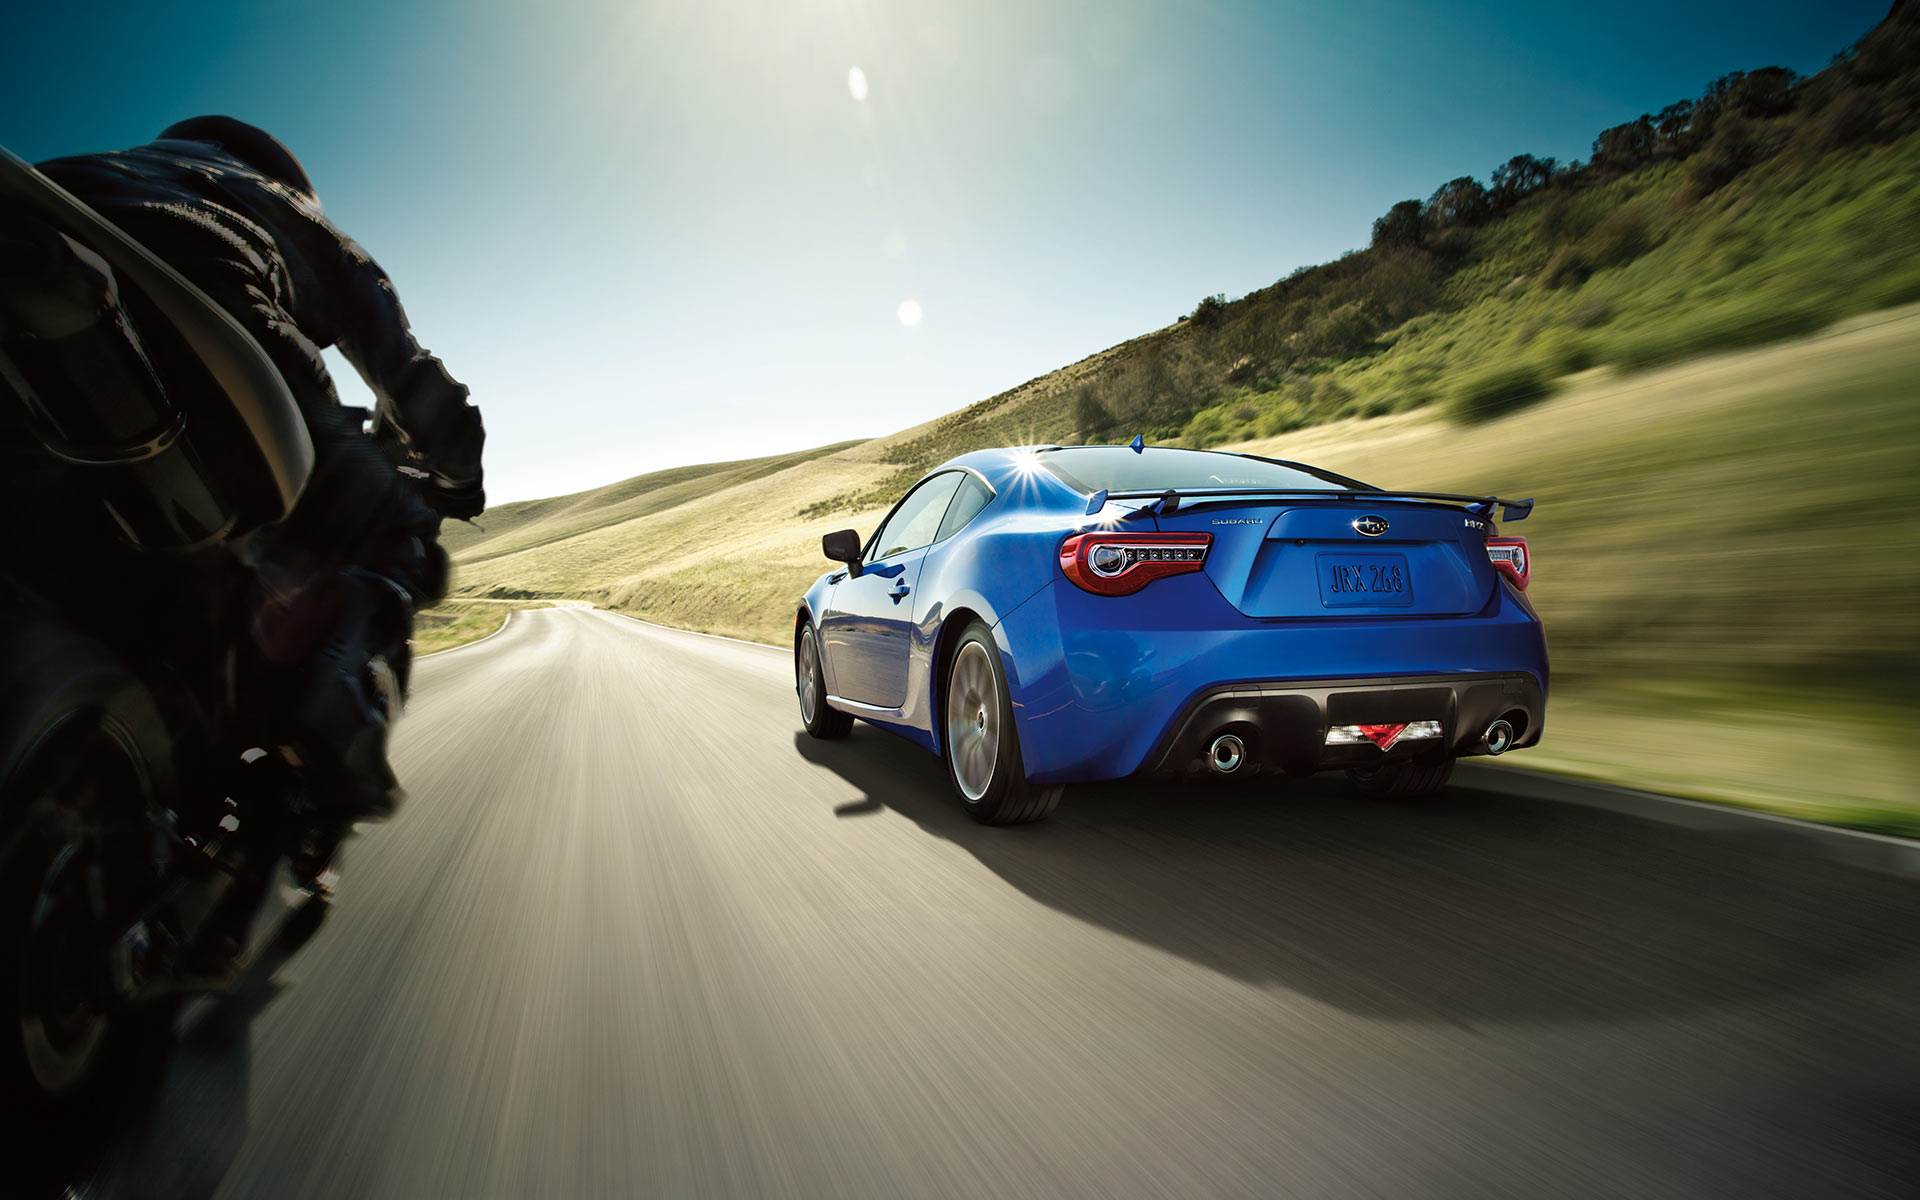 blue brz driving alongside a motorcycle